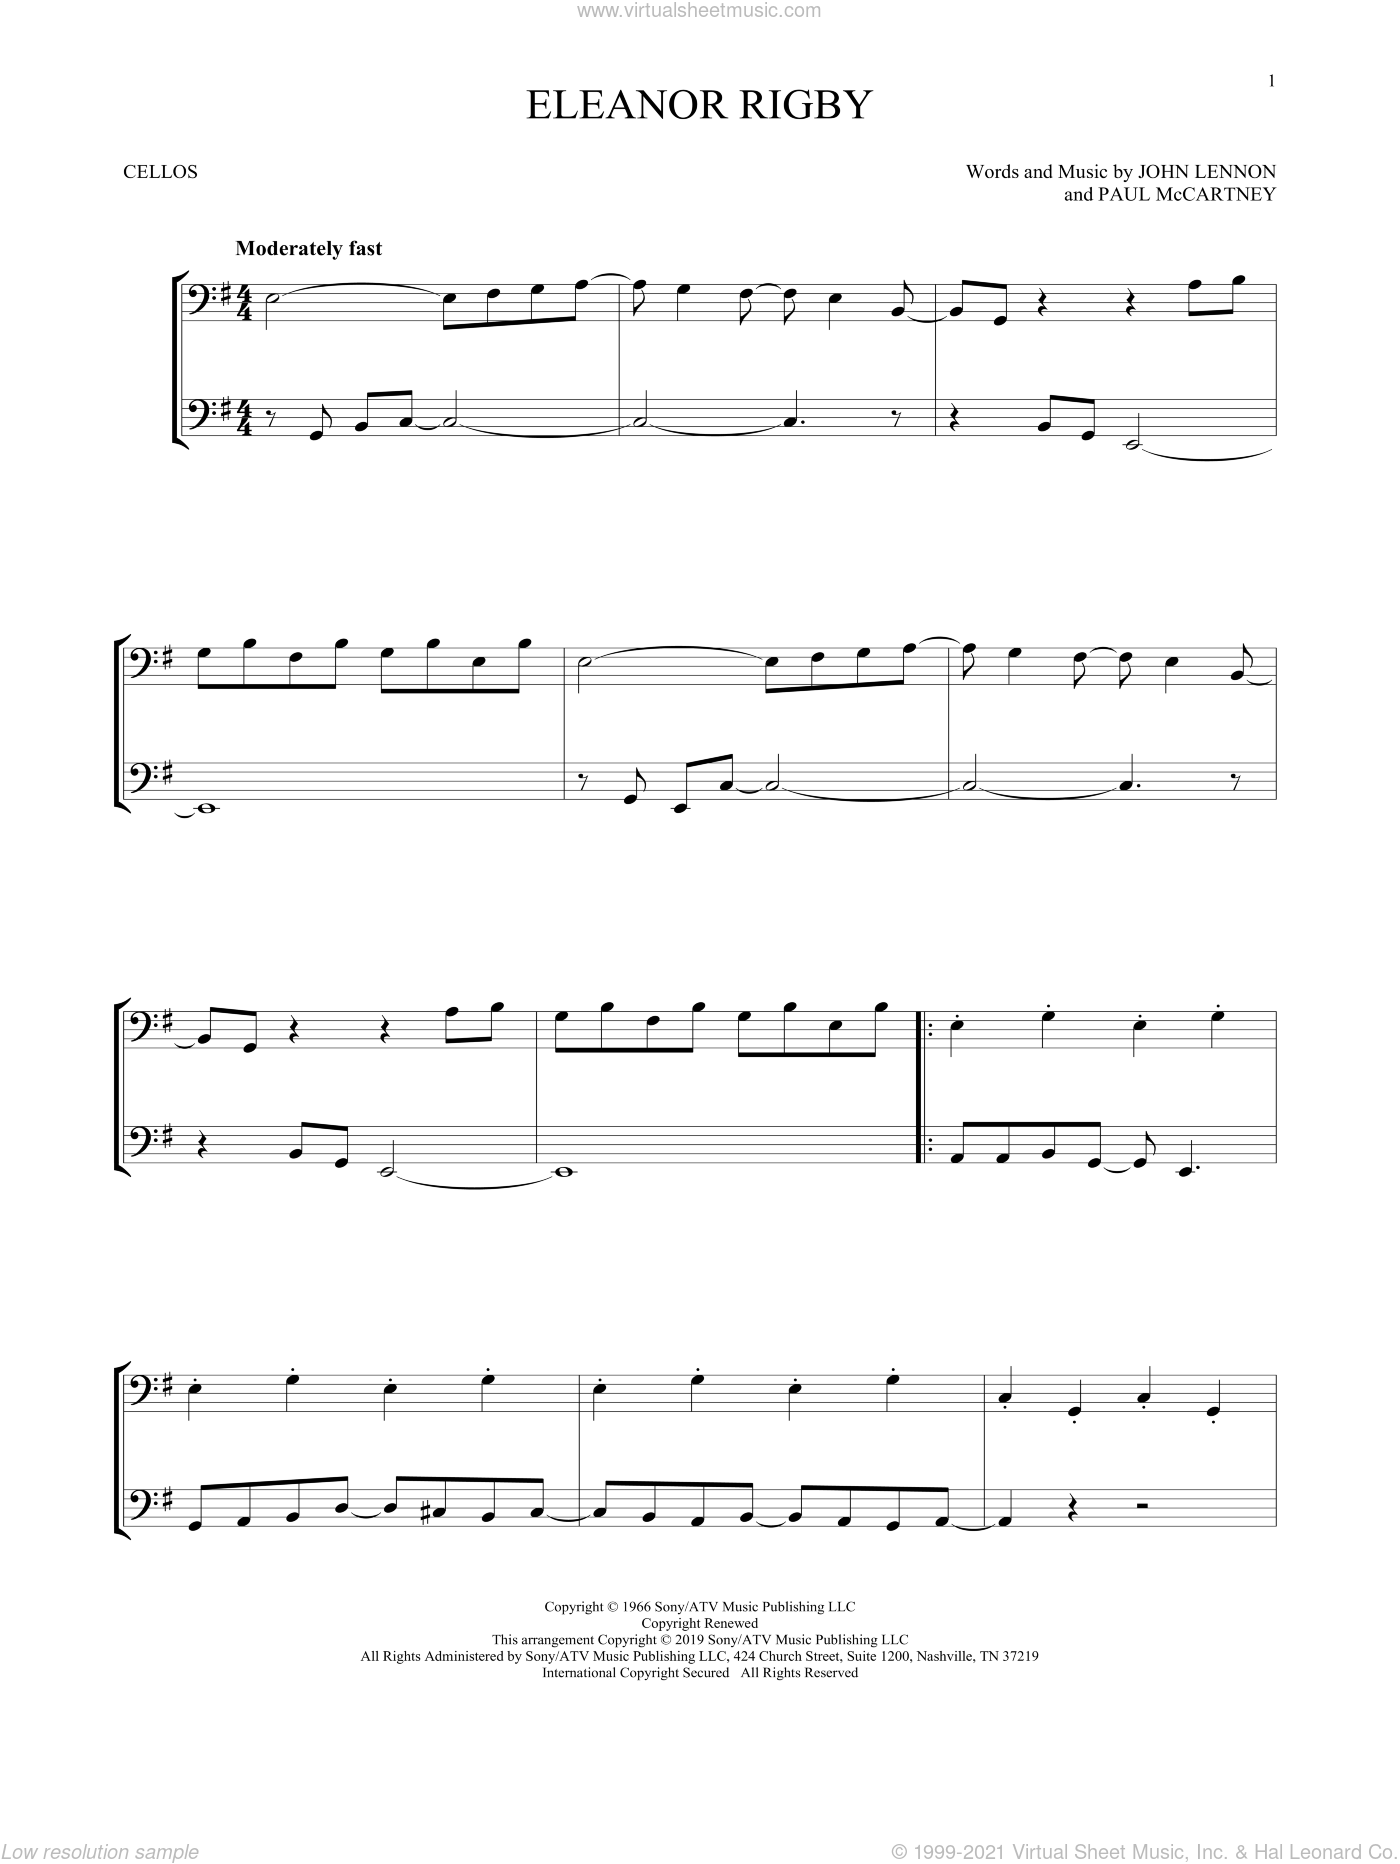 Eleanor Rigby sheet music for two cellos (duet, duets) by The Beatles, John Lennon and Paul McCartney, intermediate skill level